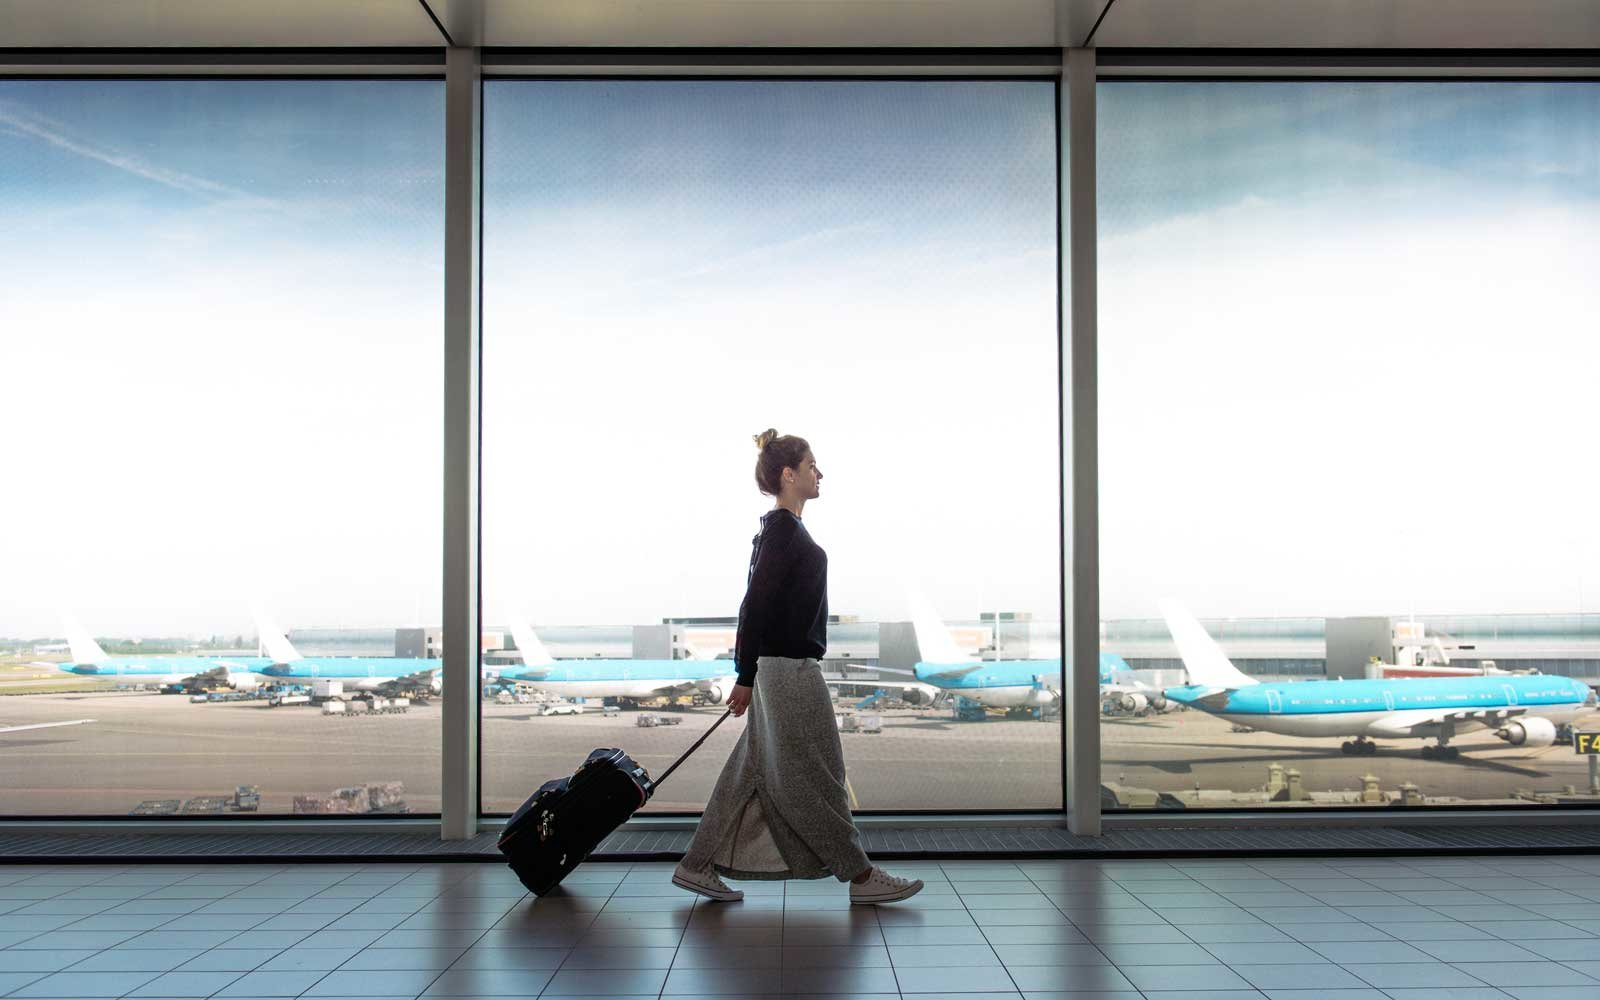 Woman at airport with Luggage